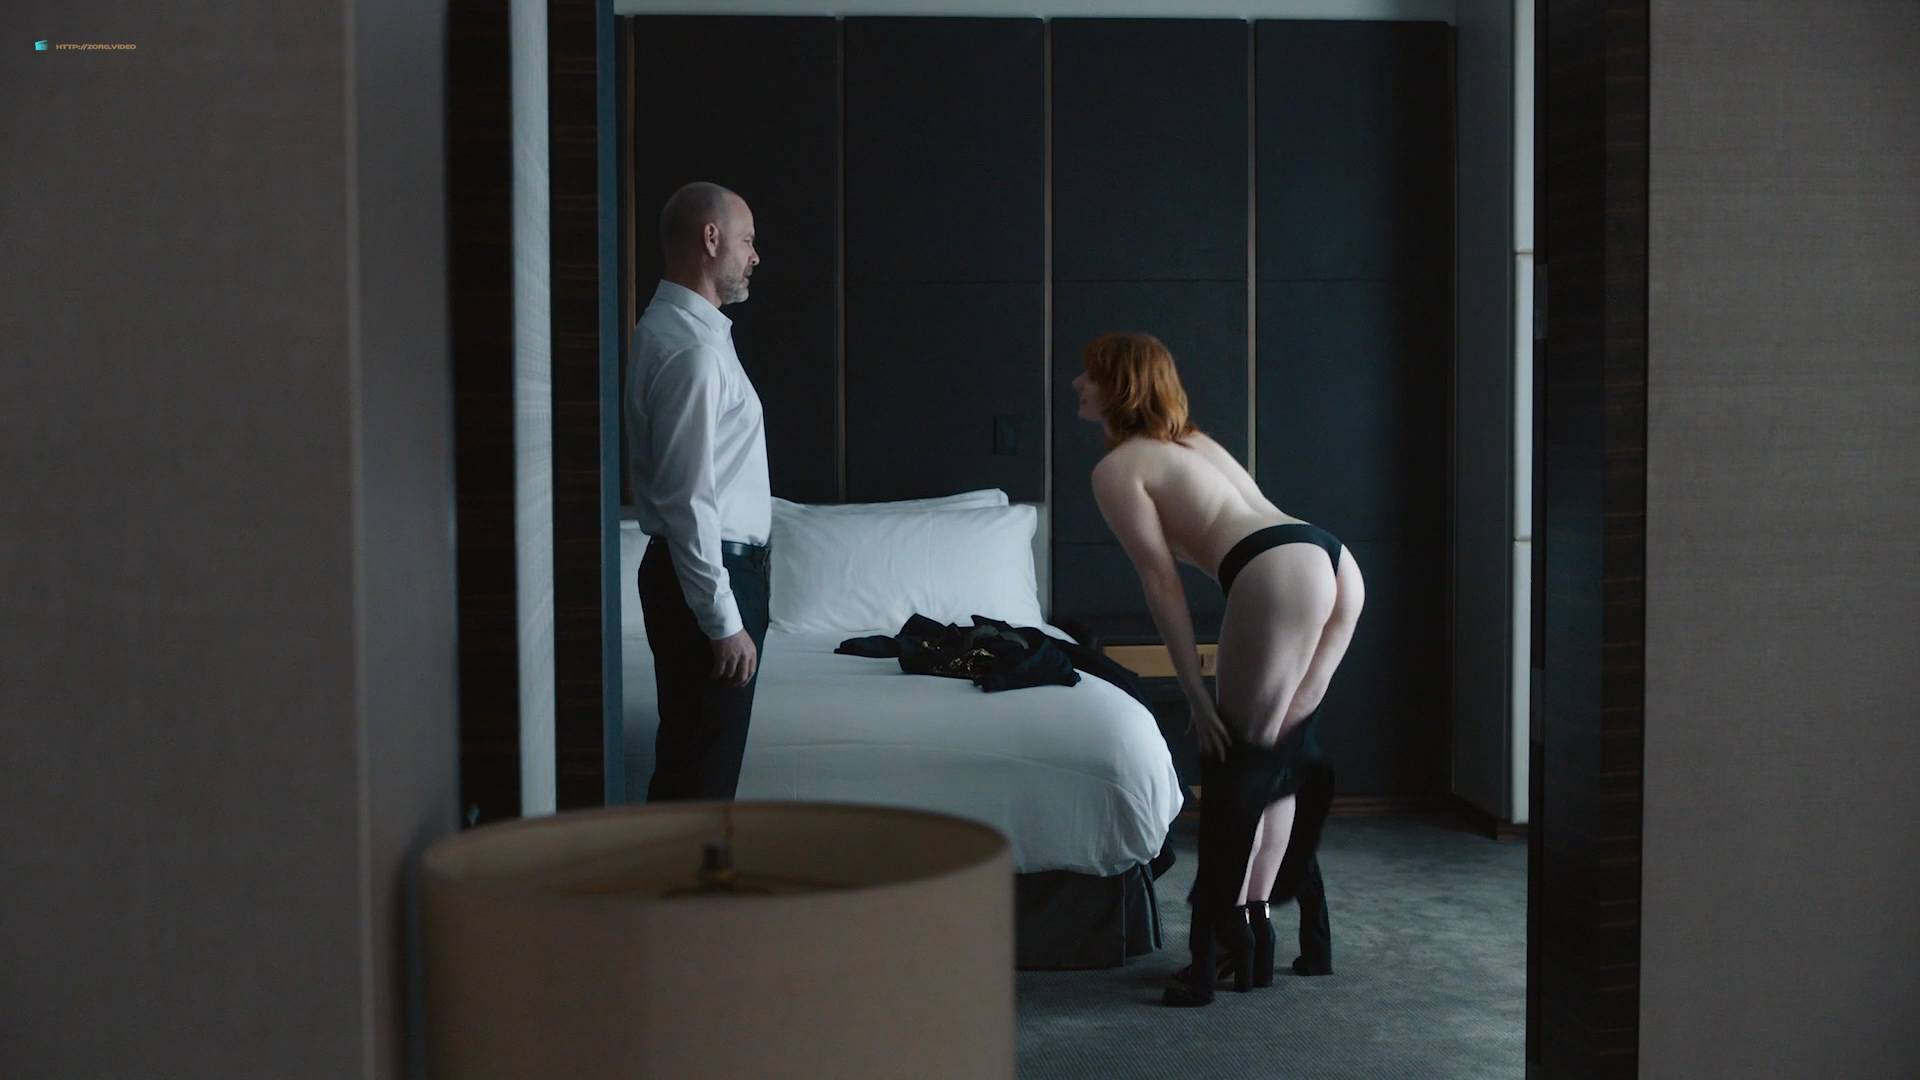 Louisa-Krause-nude-butt-and-oral-Gillian-Williams-nude-oral-too-The-Girlfriend-Experience-2017-s2e1-HD-1080p-Web-05.jpg